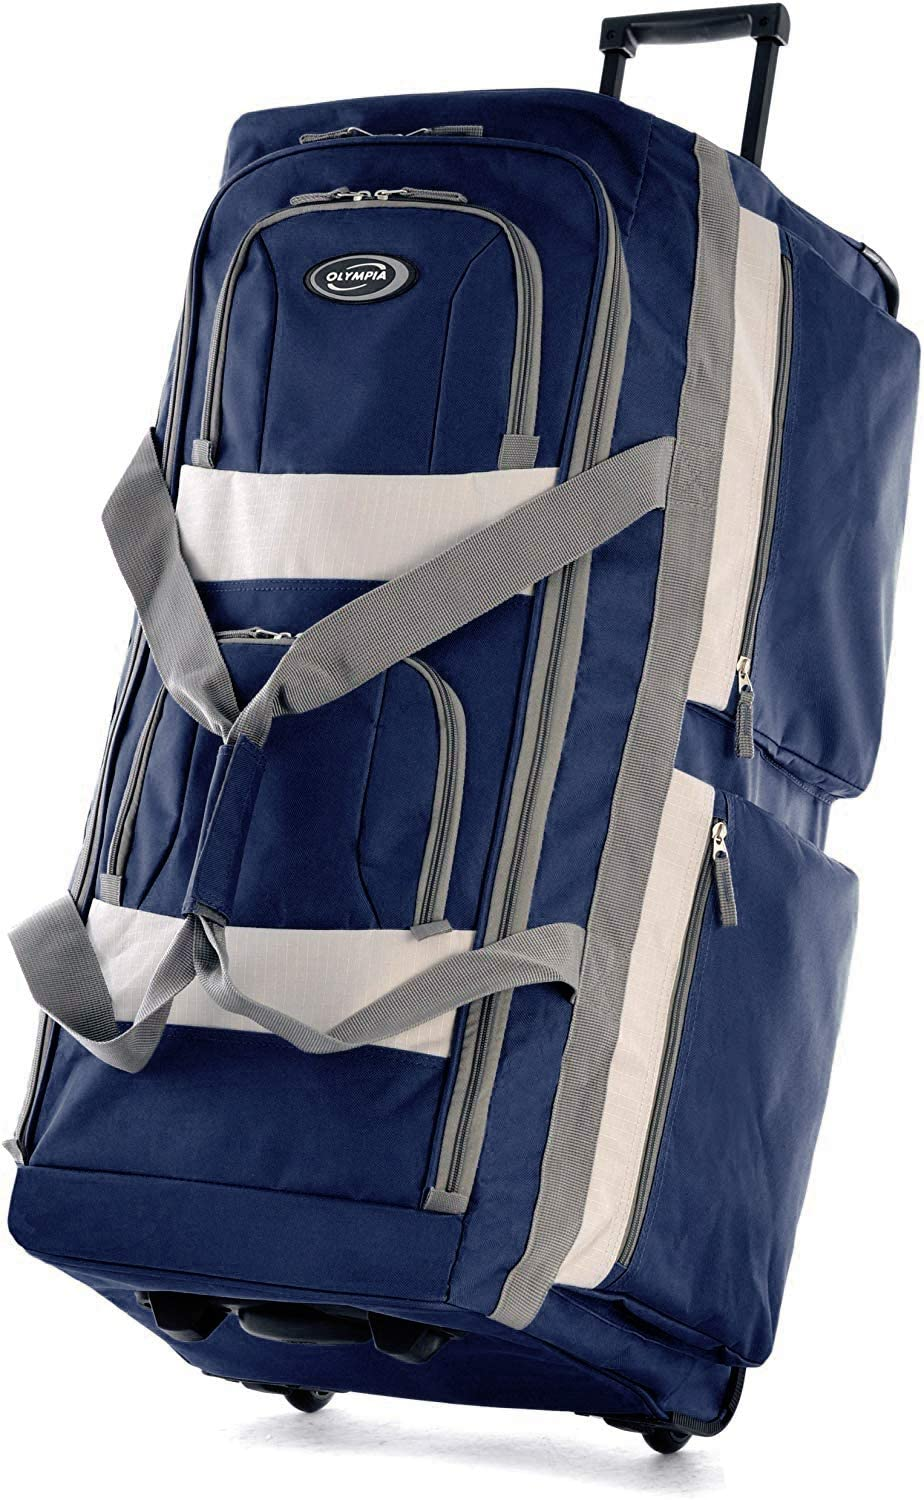 | Olympia 8 Pocket Rolling Duffel Bag, Navy, 22 inch | Travel Duffels